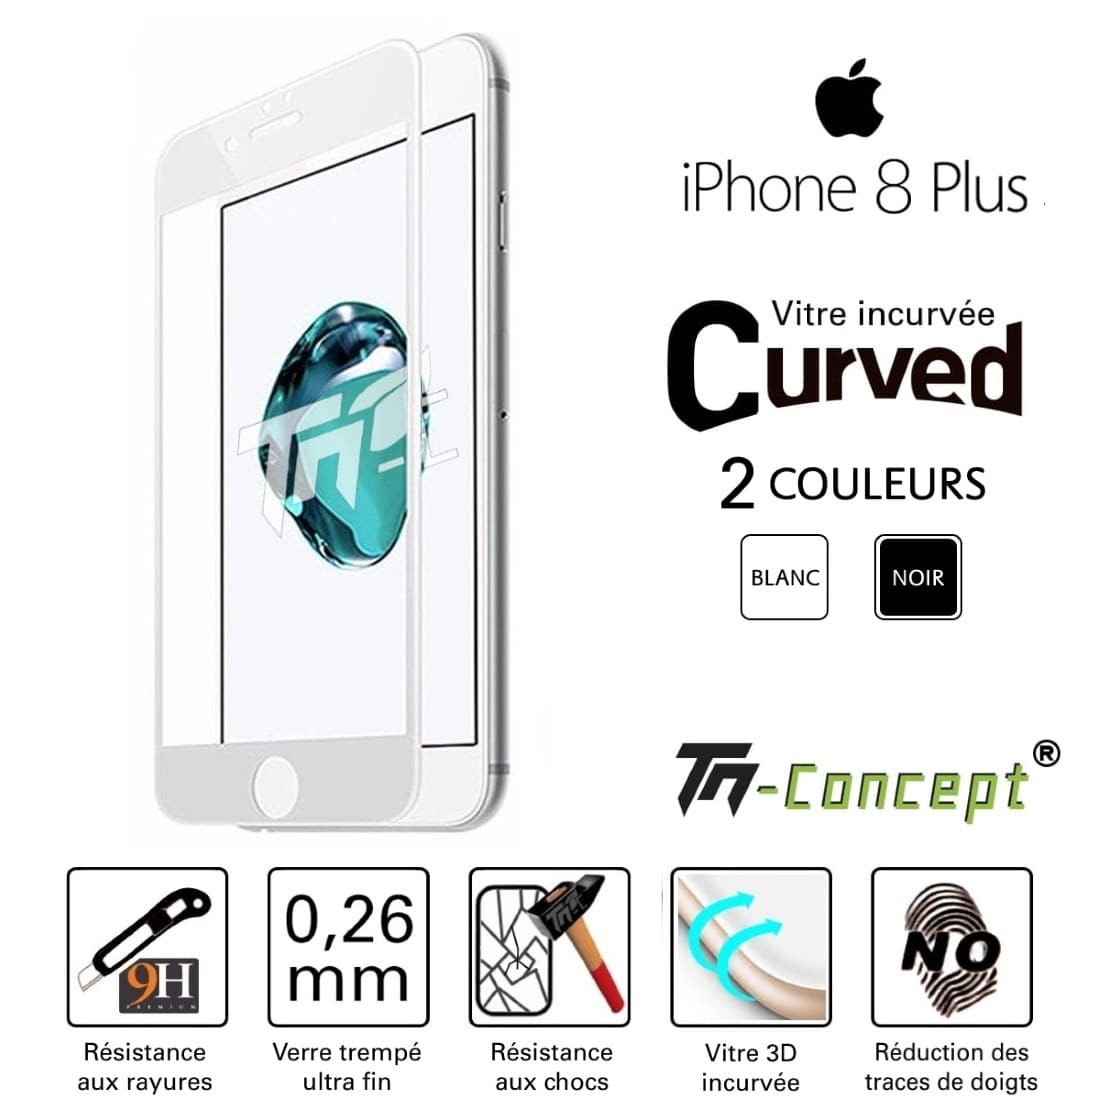 Tm Concept Apple iPhone 8 Plus Verre trempé intég